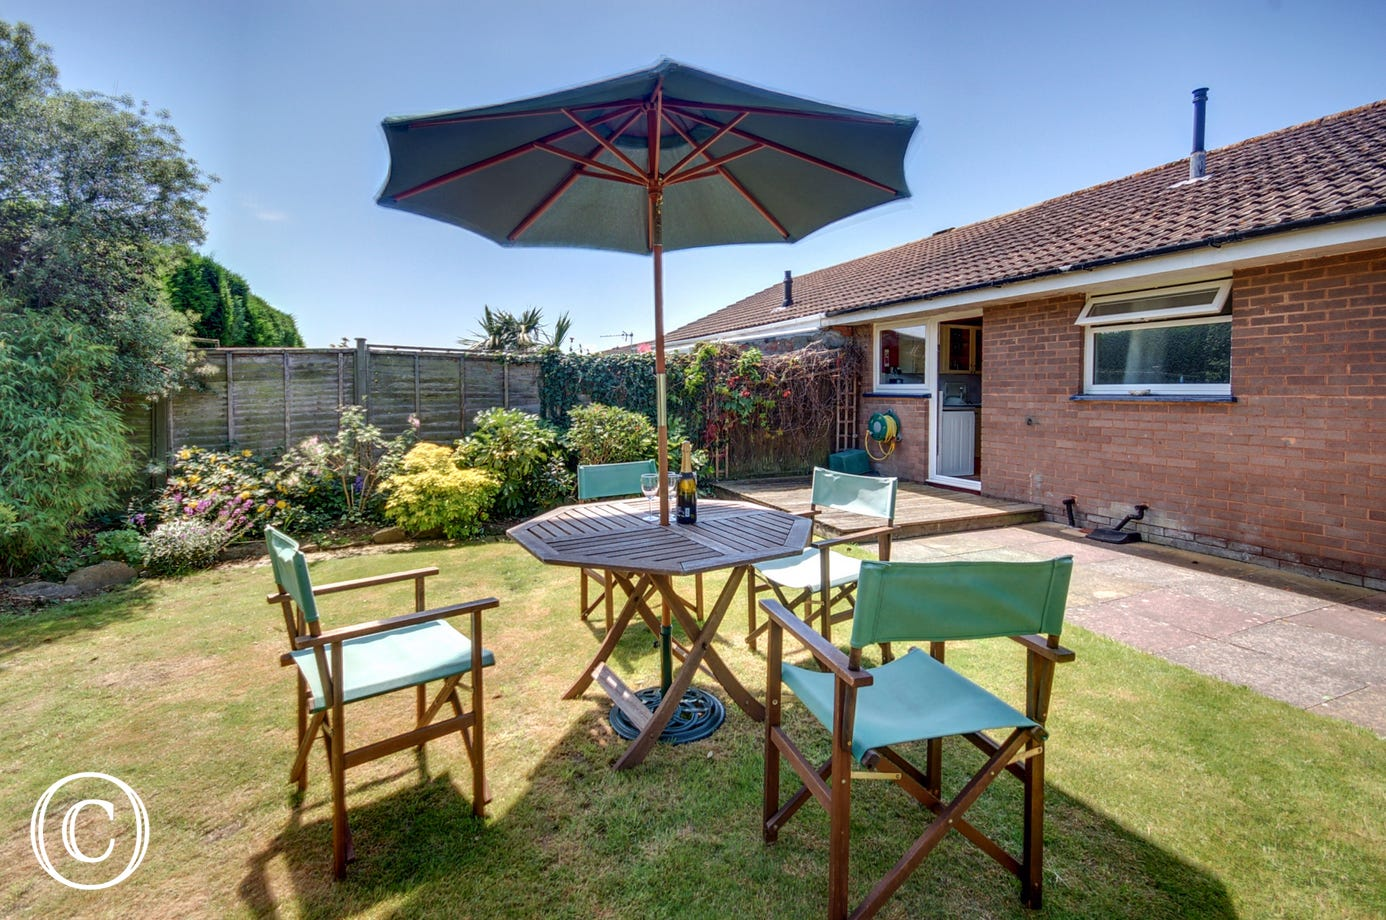 Enjoy al fresco dining together in the garden